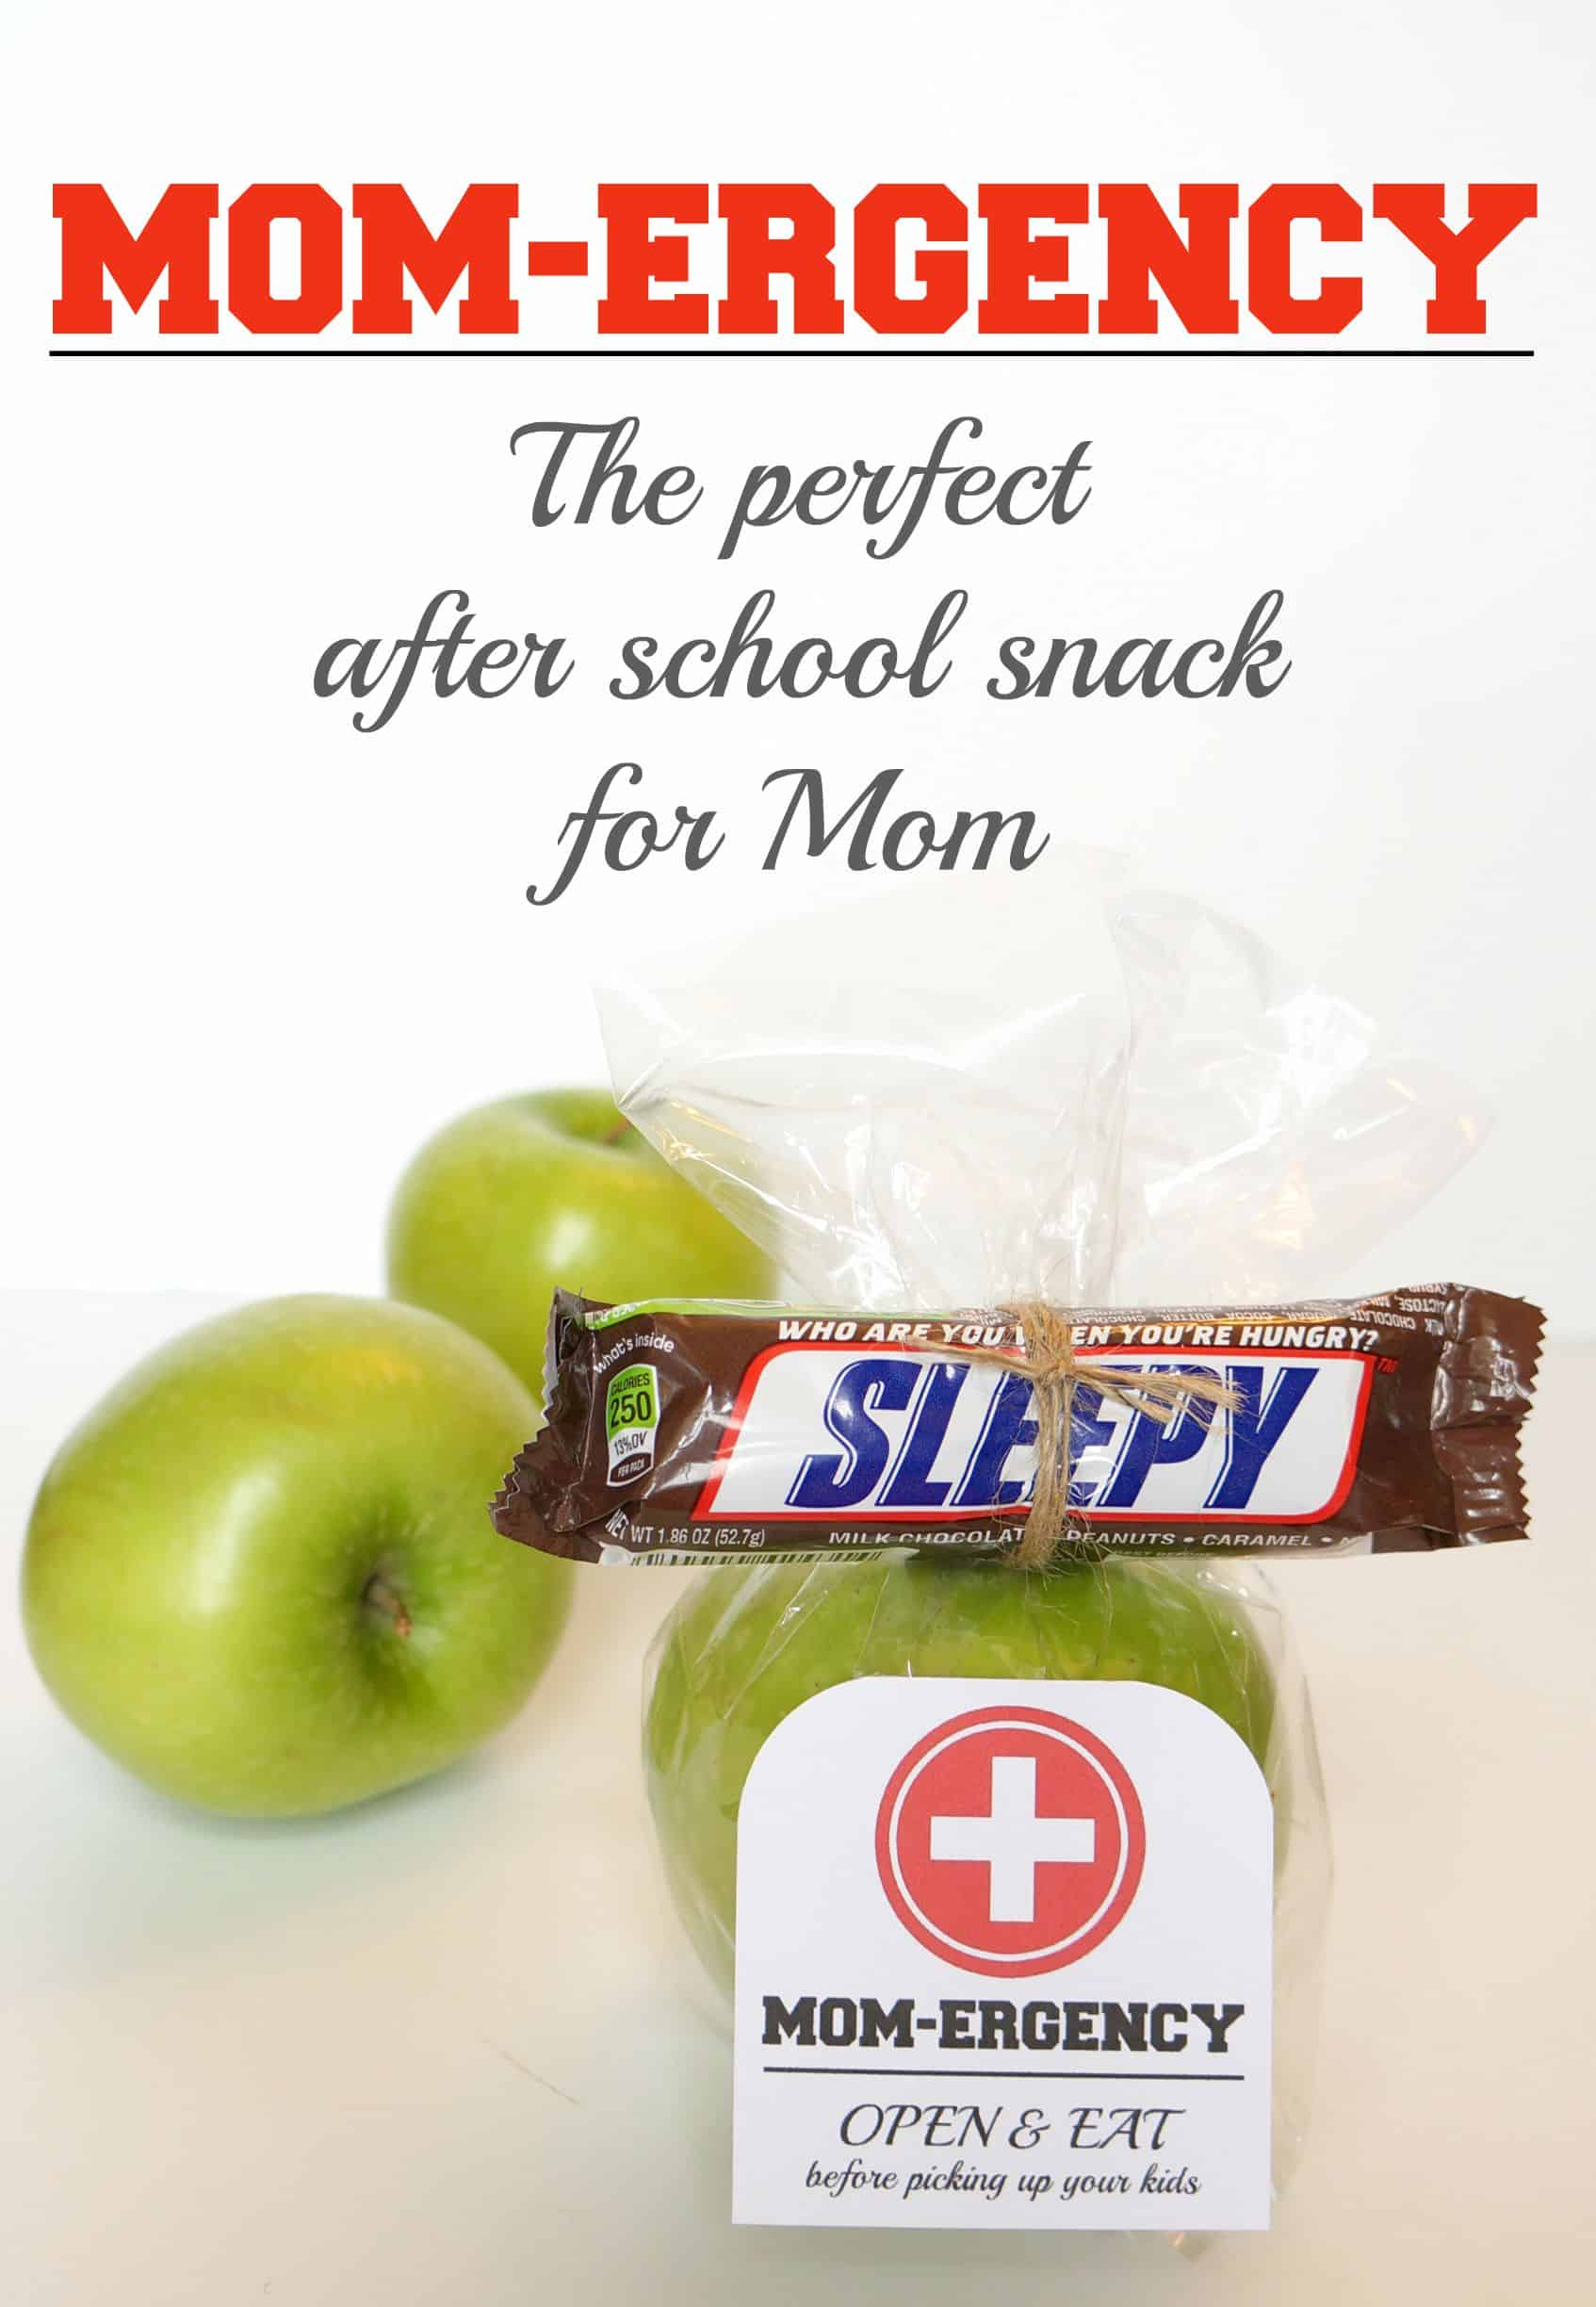 The perfect after school snack for Mom to help her combat hunger. A Mom-ergency! #EatASNICKERS #ad